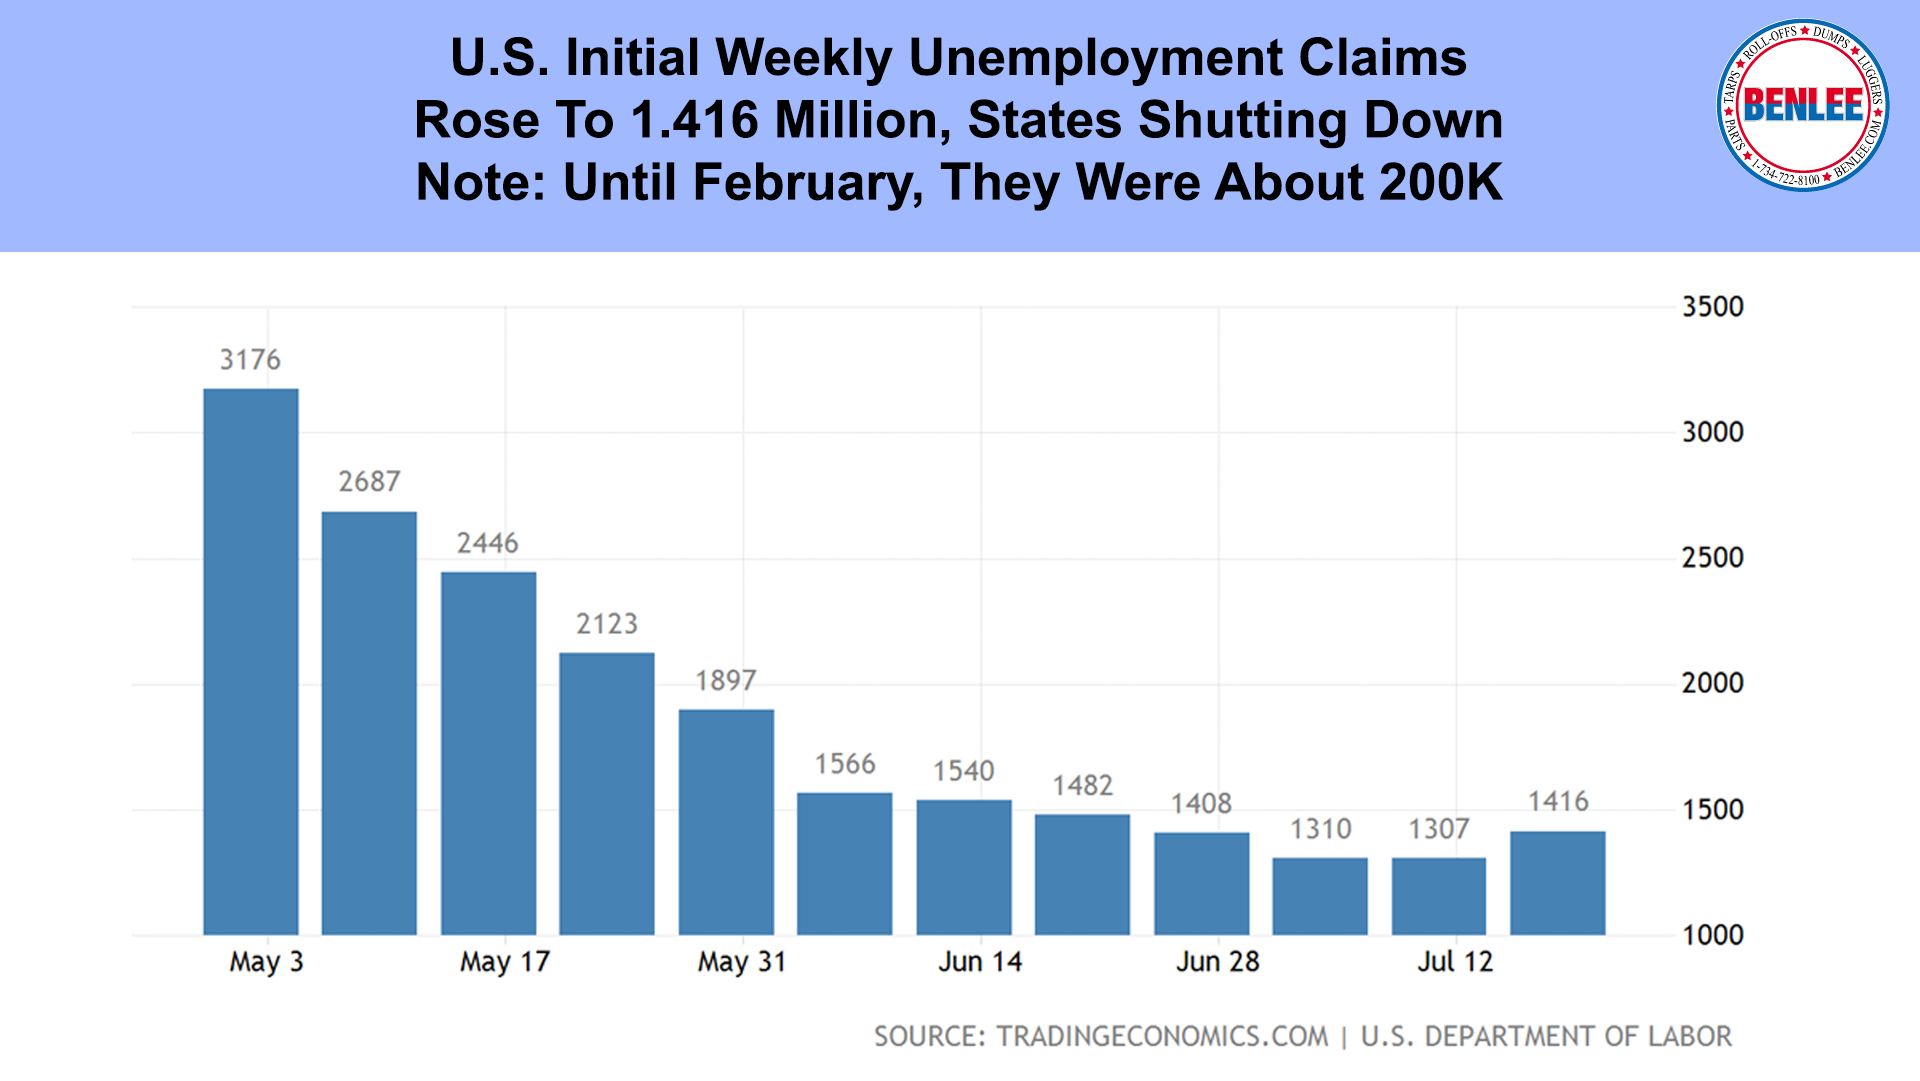 U.S. Initial Weekly Unemployment Claims